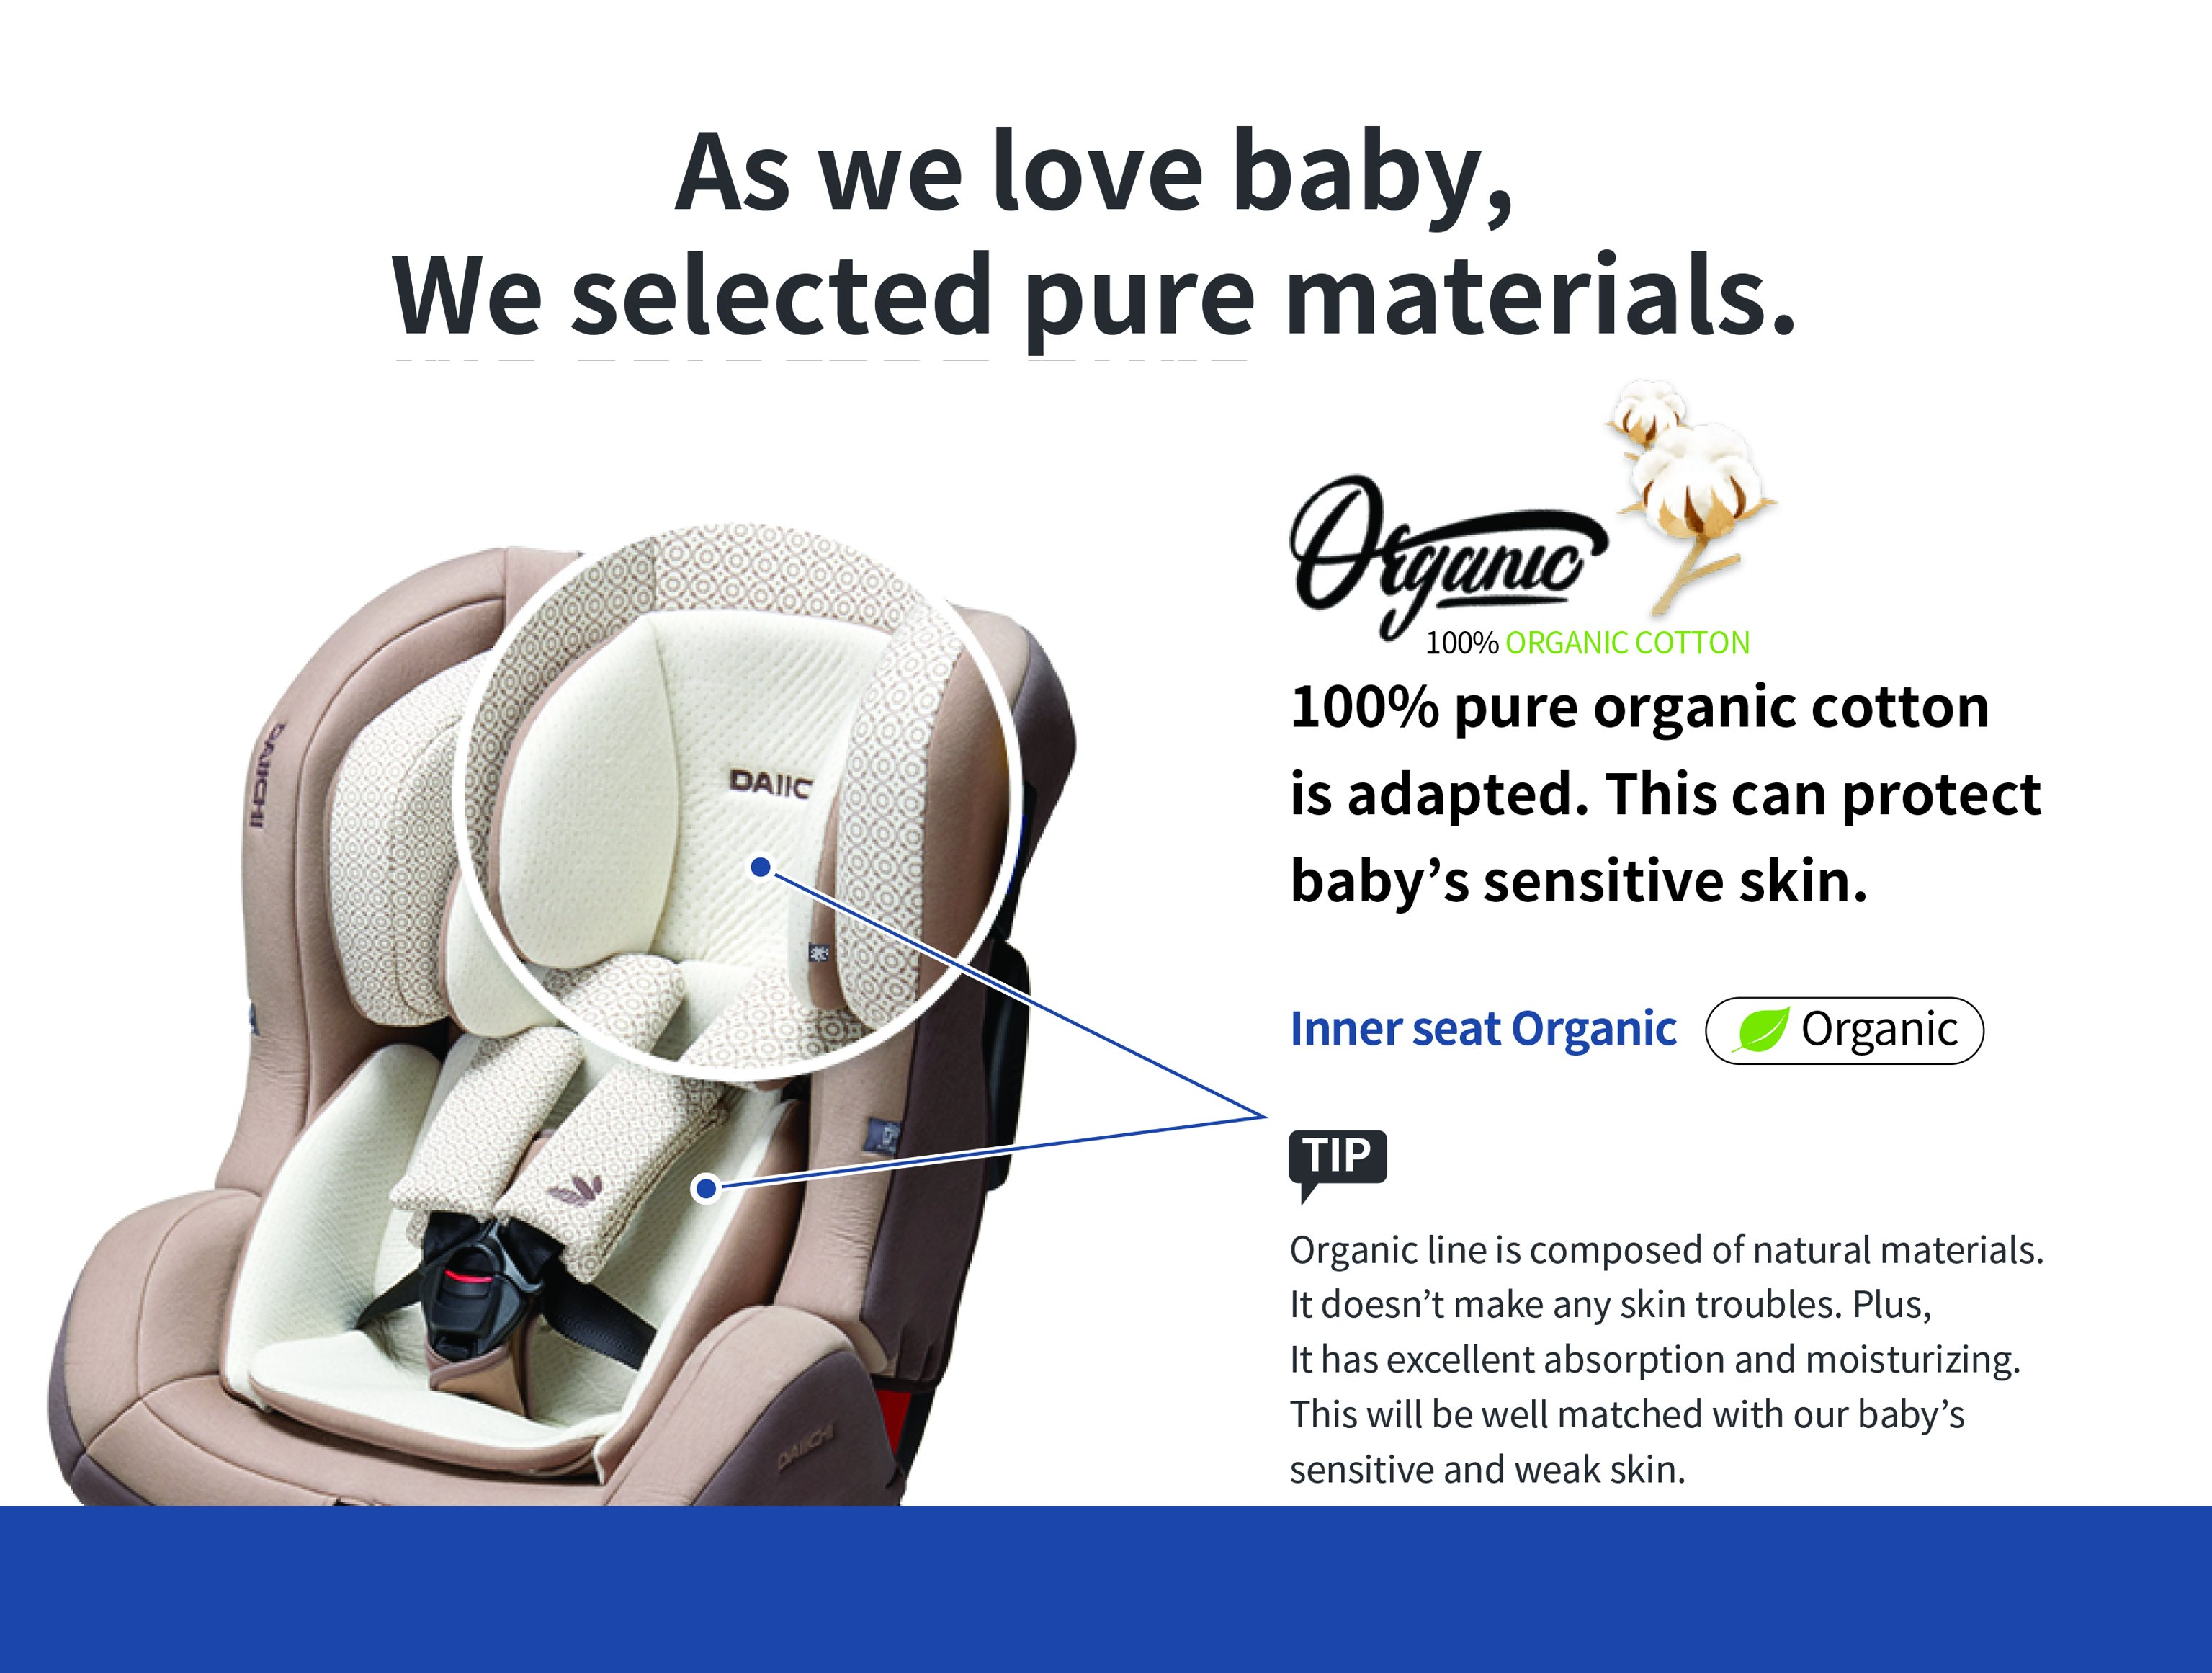 DAIICHI CAR SEAT FIRST7 PLUS ORGANIC BROWN Pure Materials